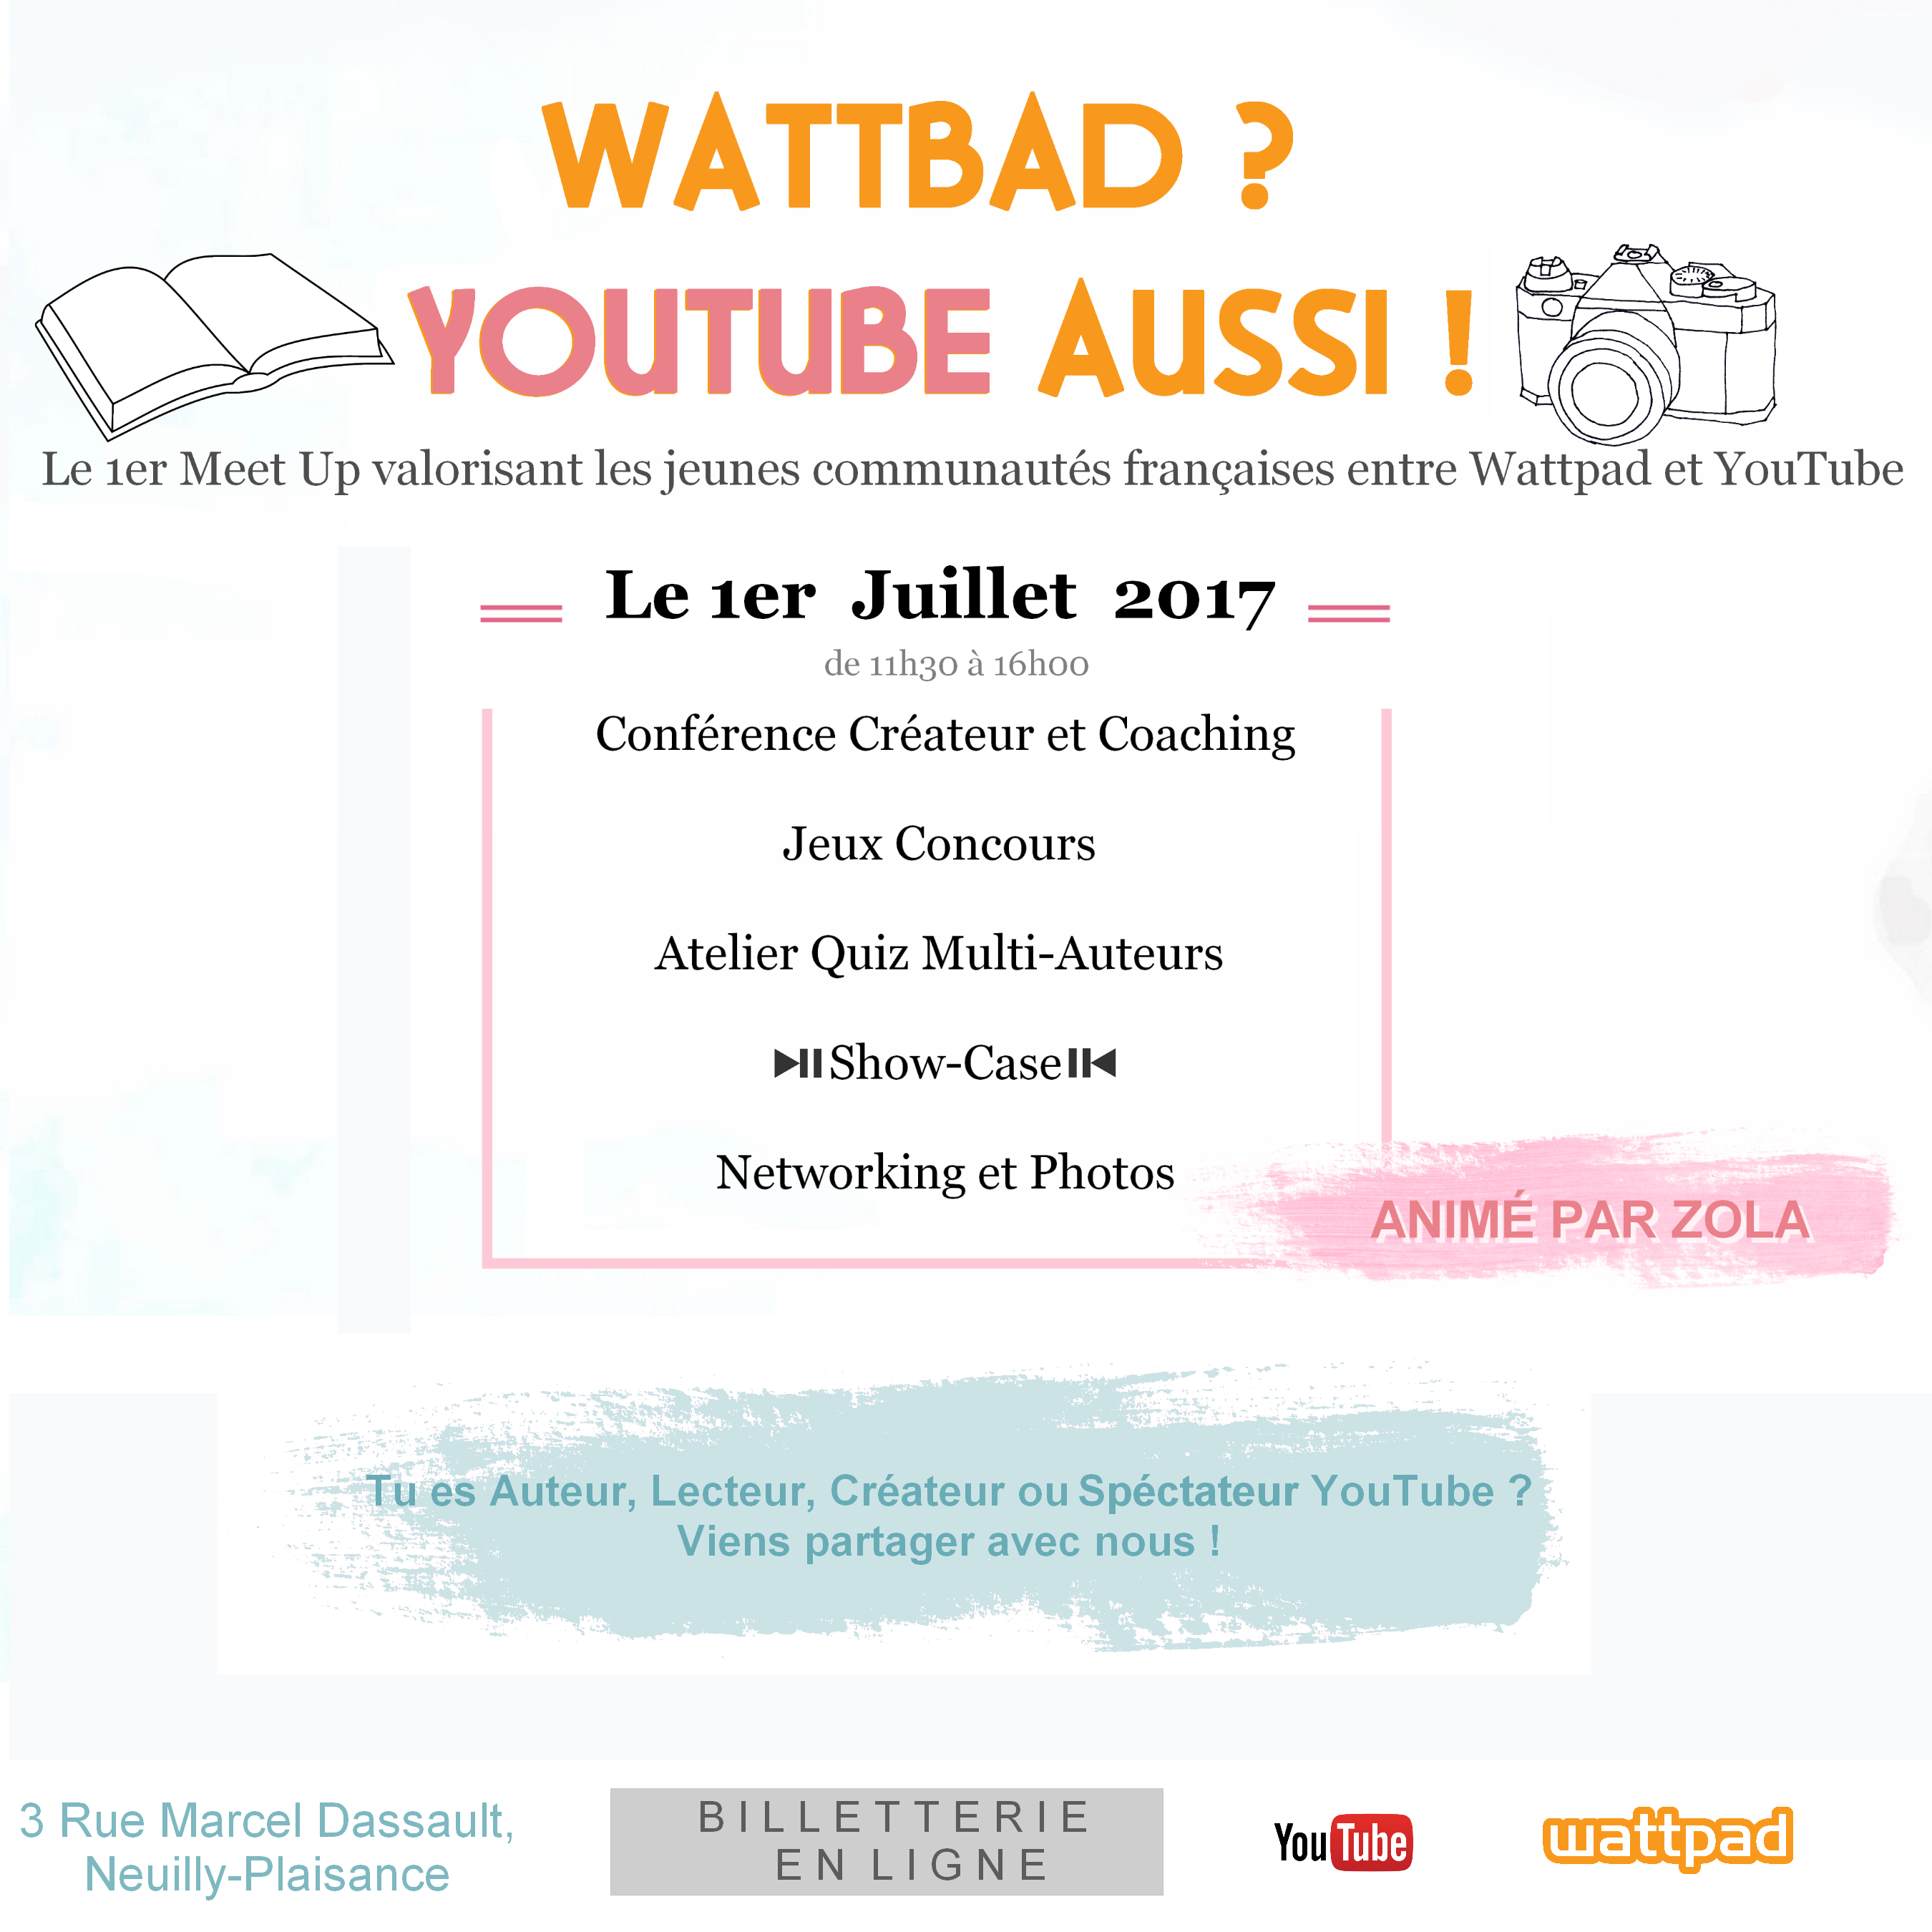 Meet Up Wattpad, Wattbad youtube aussi